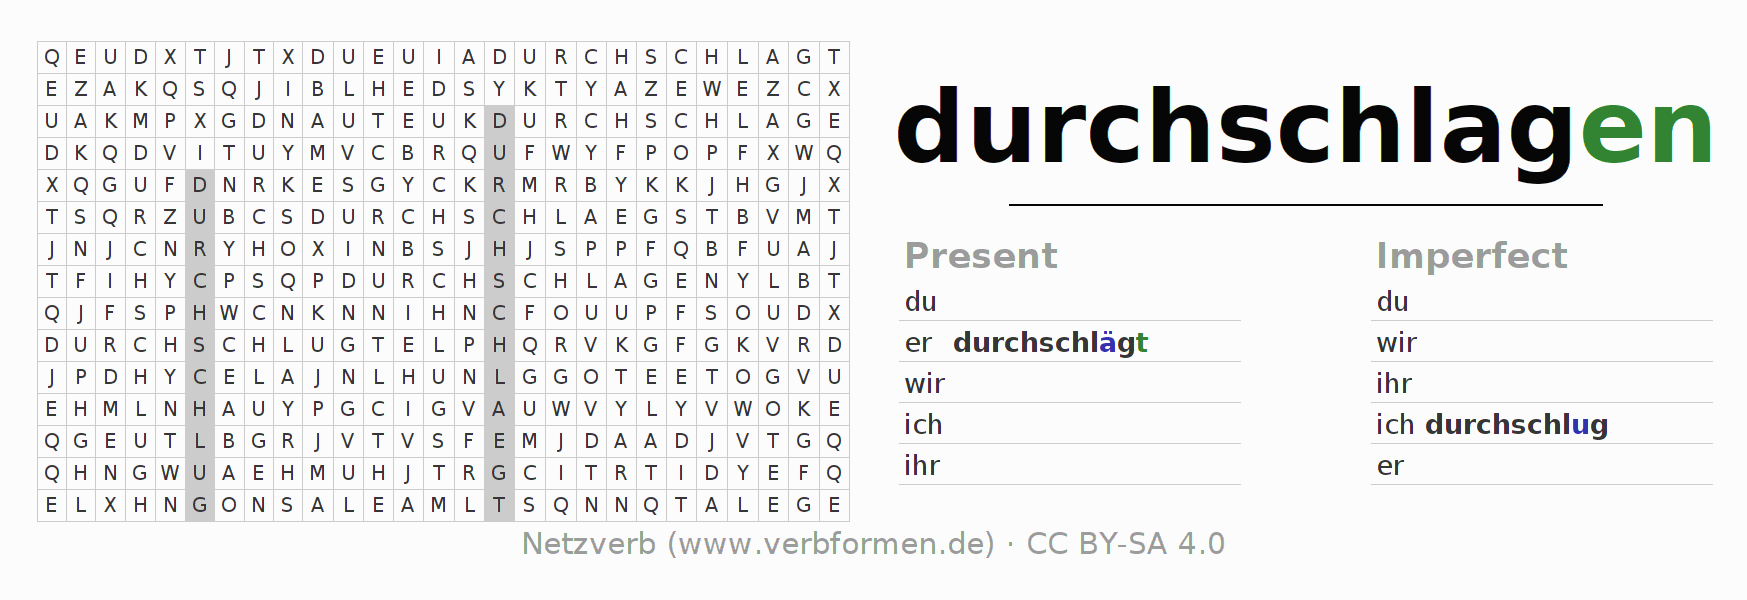 Word search puzzle for the conjugation of the verb durchschlagen (hat)